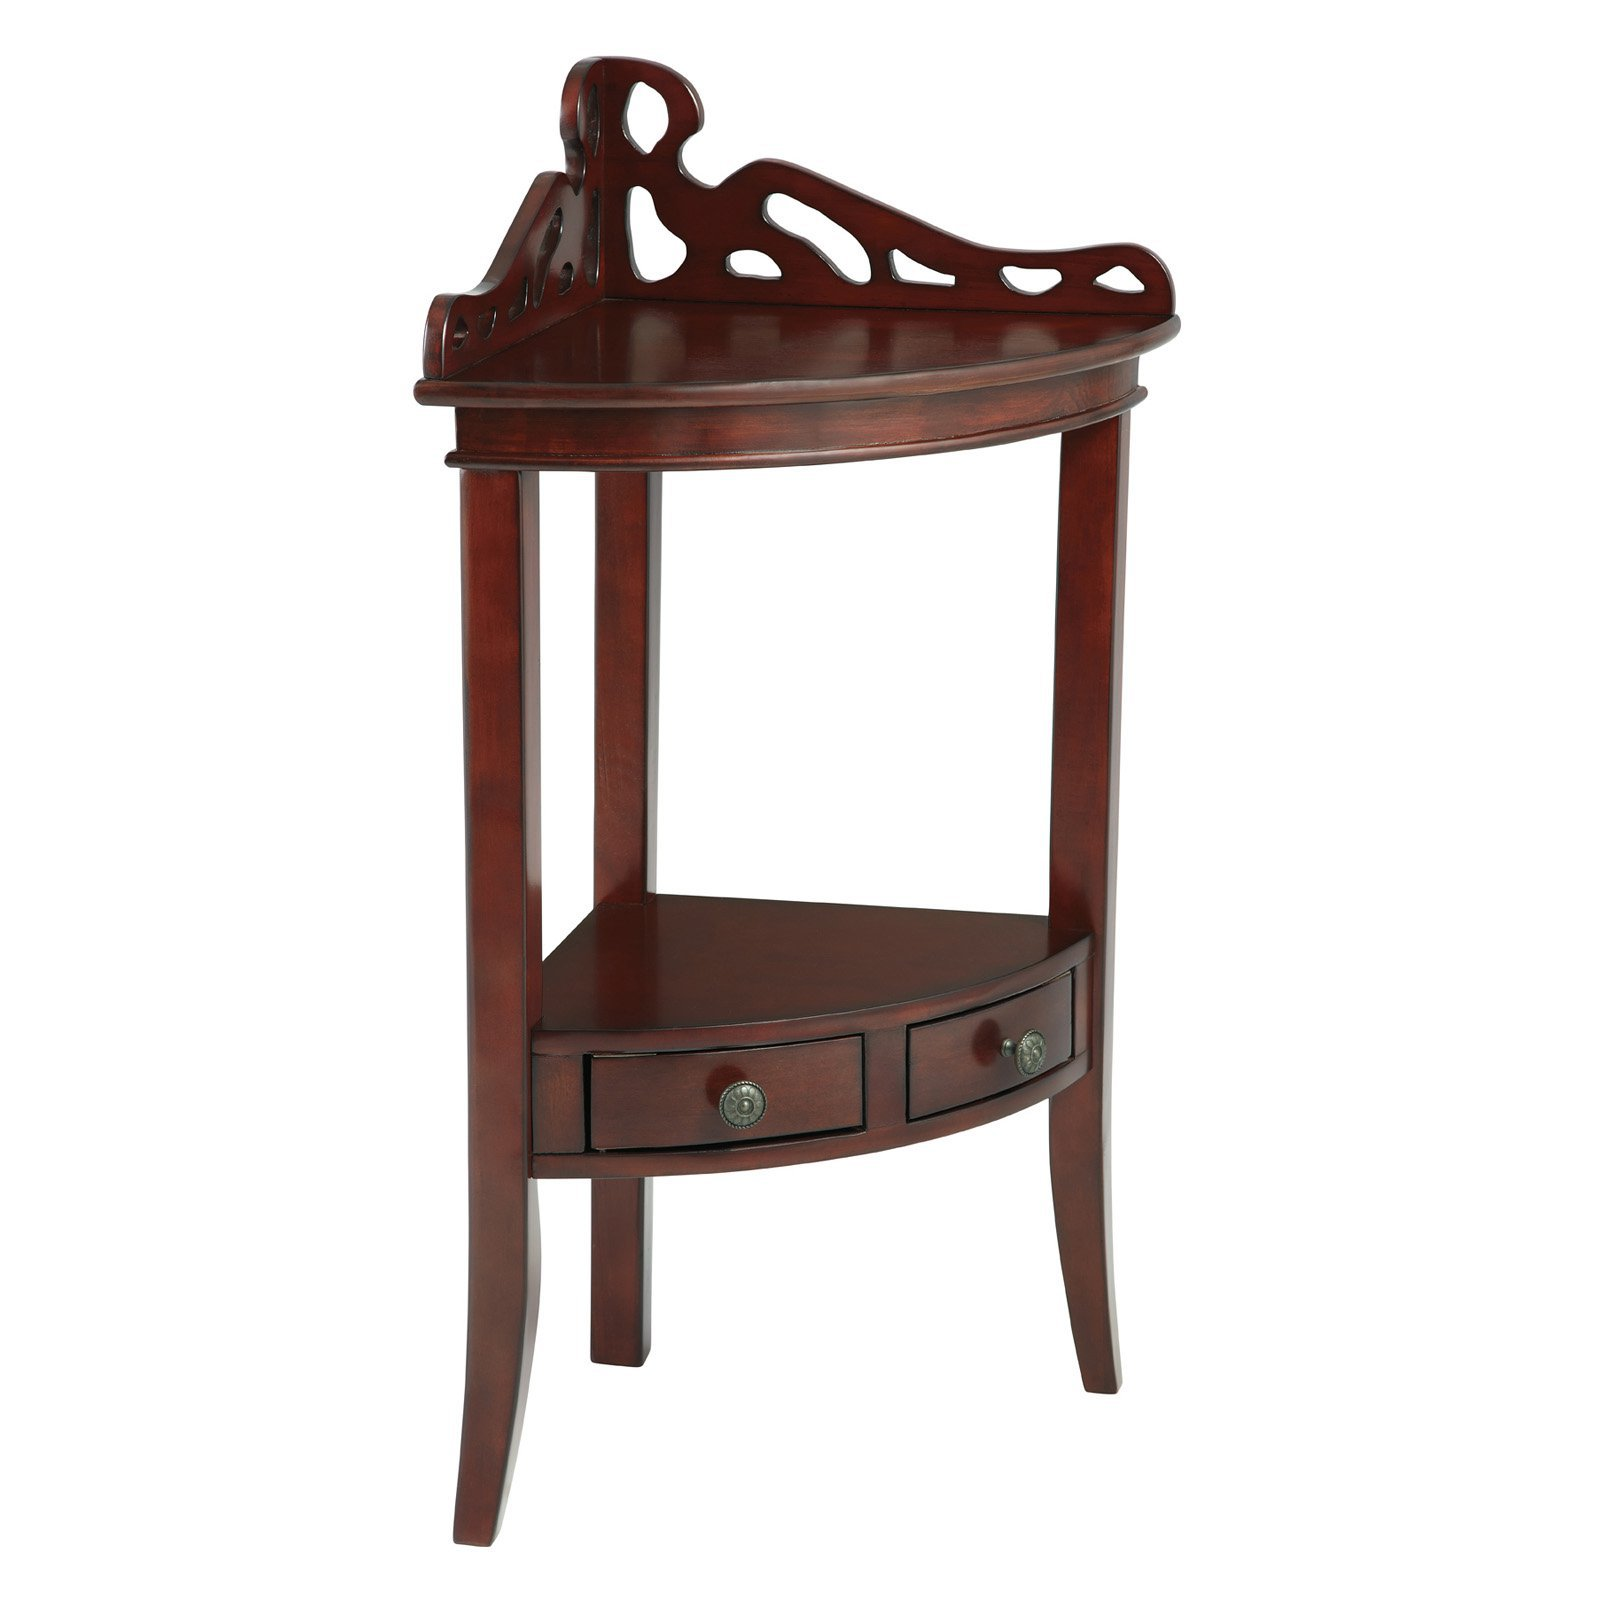 lovable hallway accent table with amazing small for bathroom bench end wooden tables easy runner patterns free outdoor gazebo pier one imports clearance furniture lighting redmond